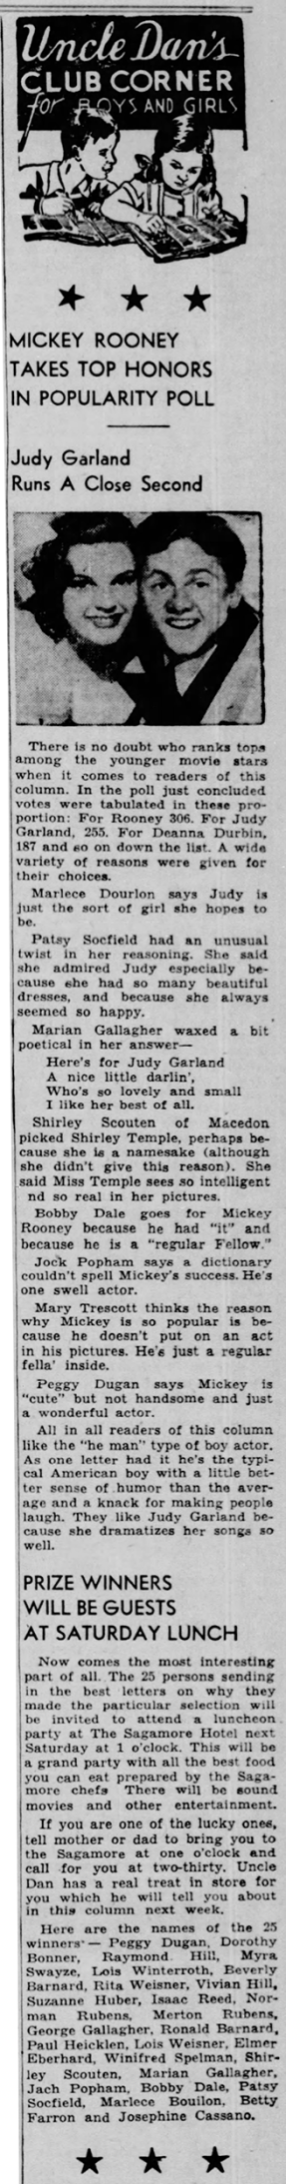 September-28,-1940-(for-September-18)-PRIZE-WINNERS-FROM-CONTEST-Democrat_and_Chronicle-(Rochester-NY)